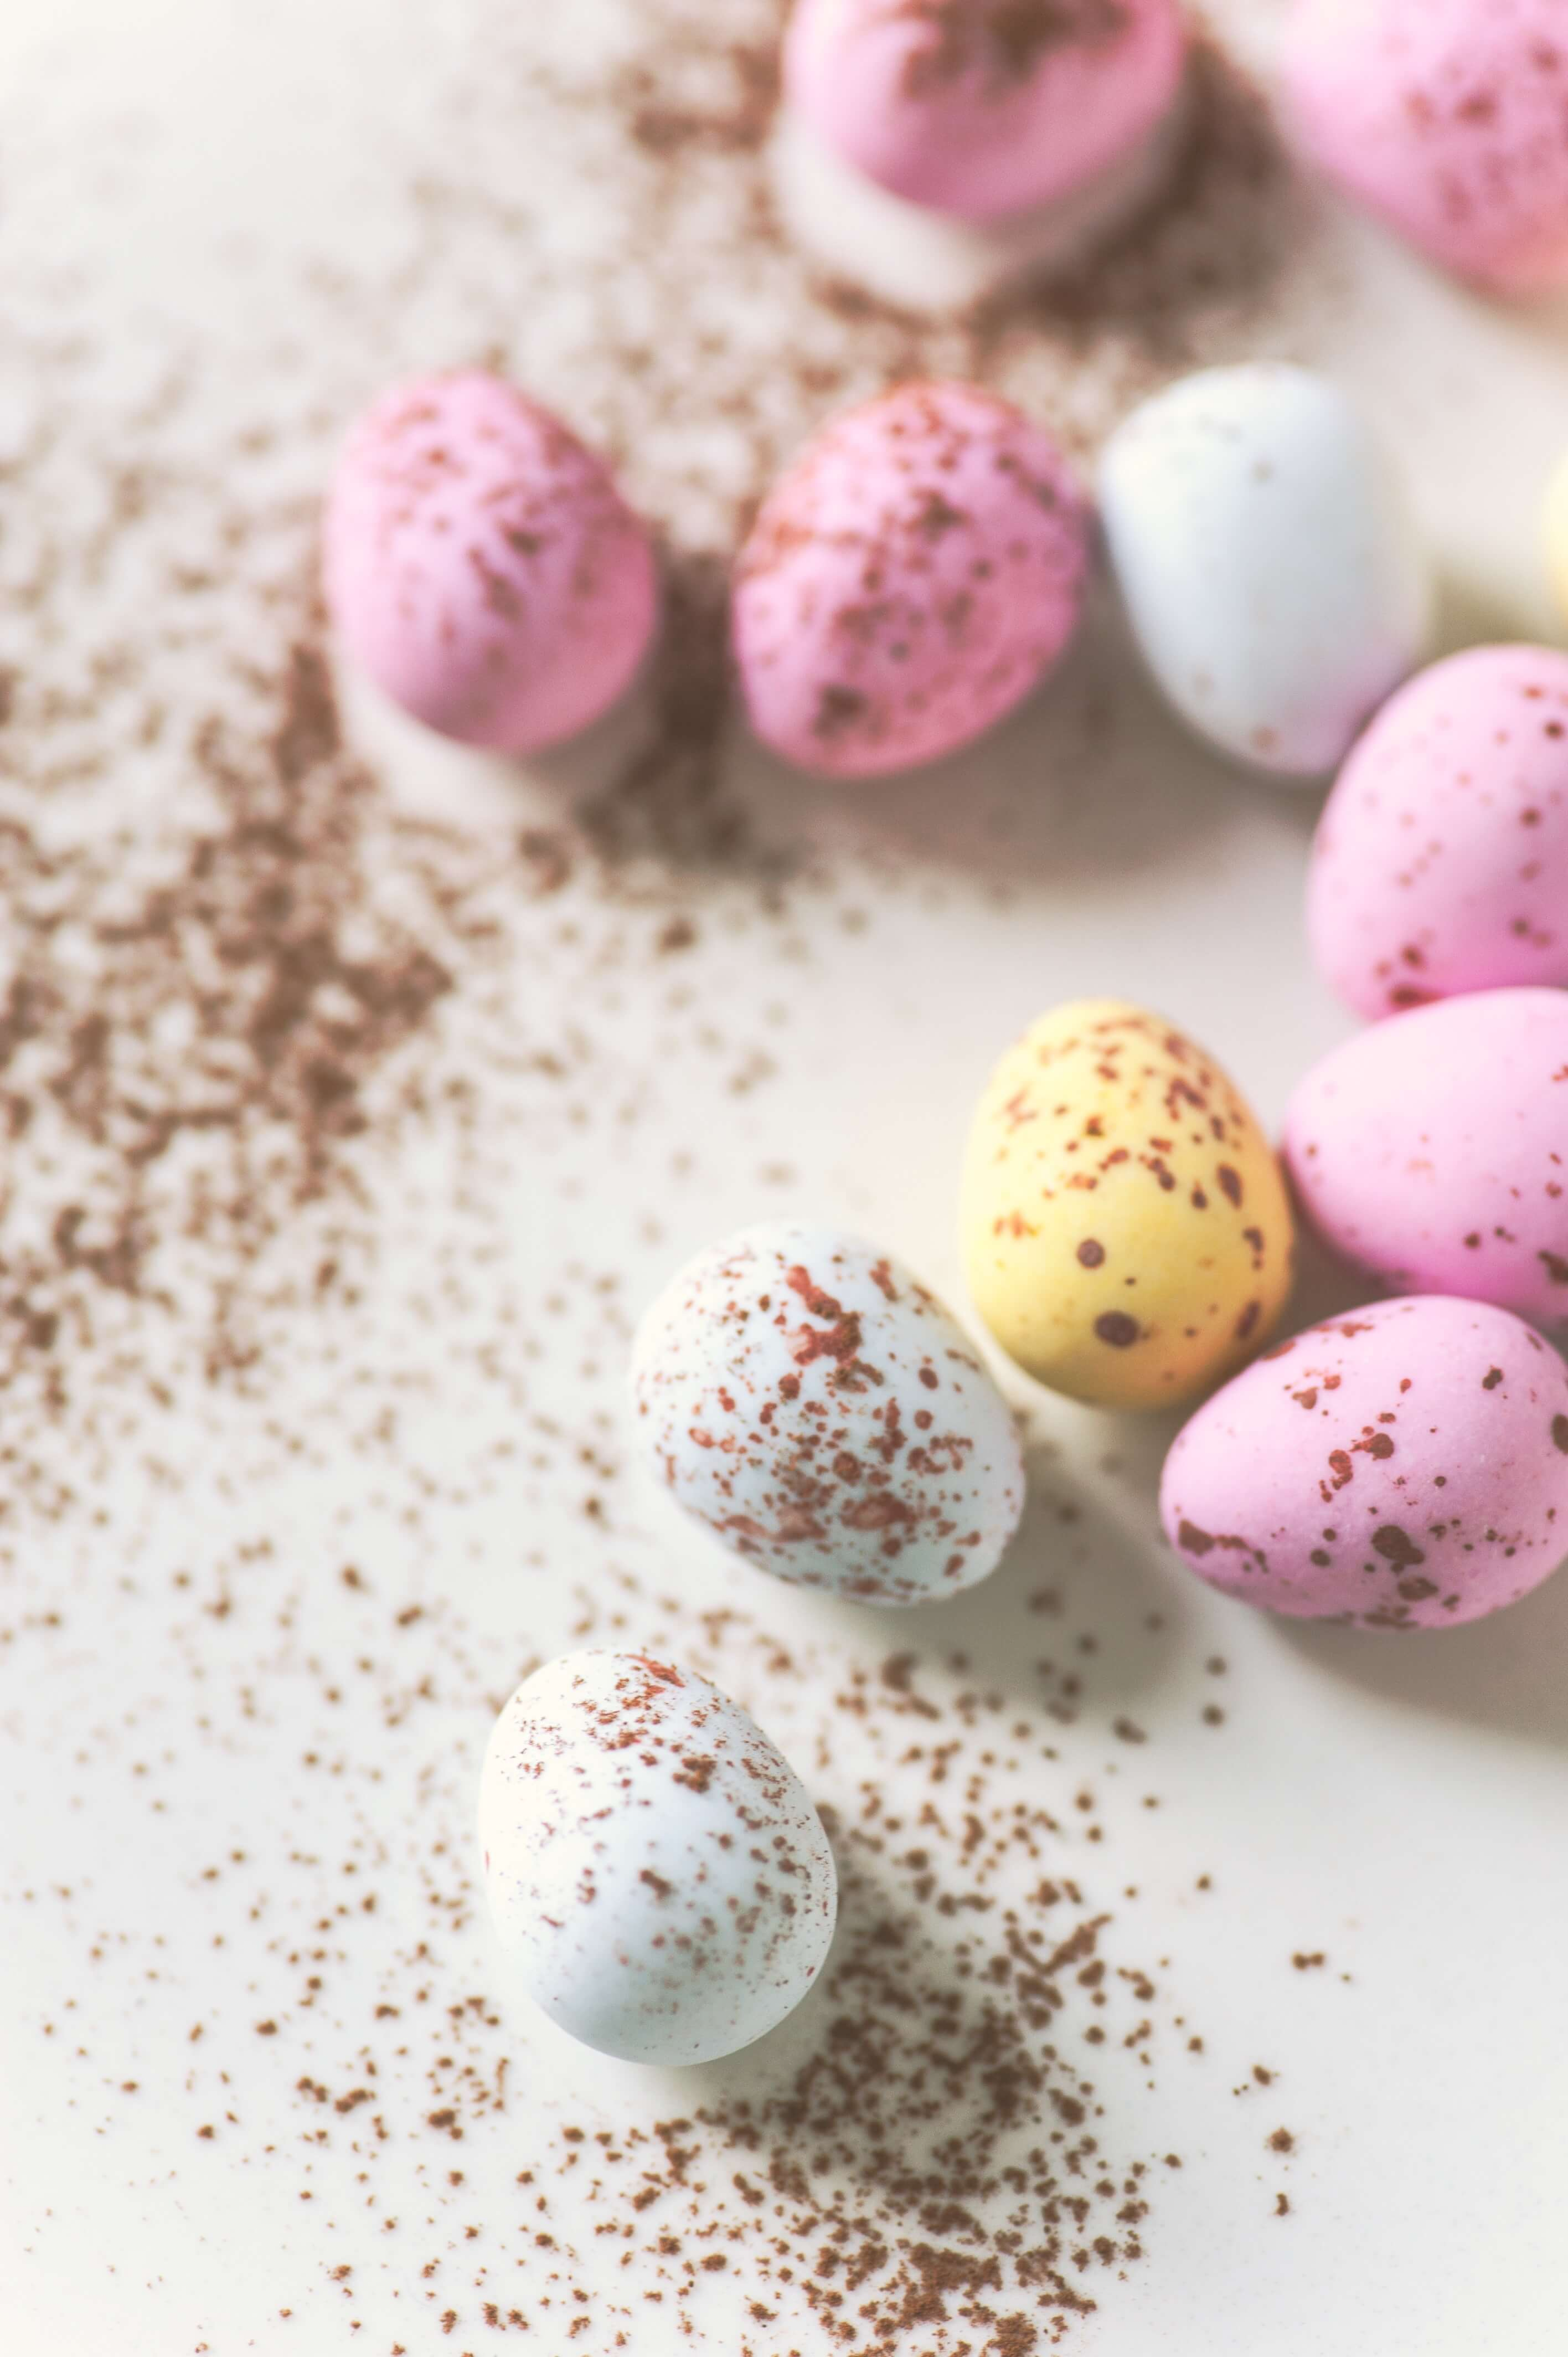 Easter activities with kids - chocolate eggs